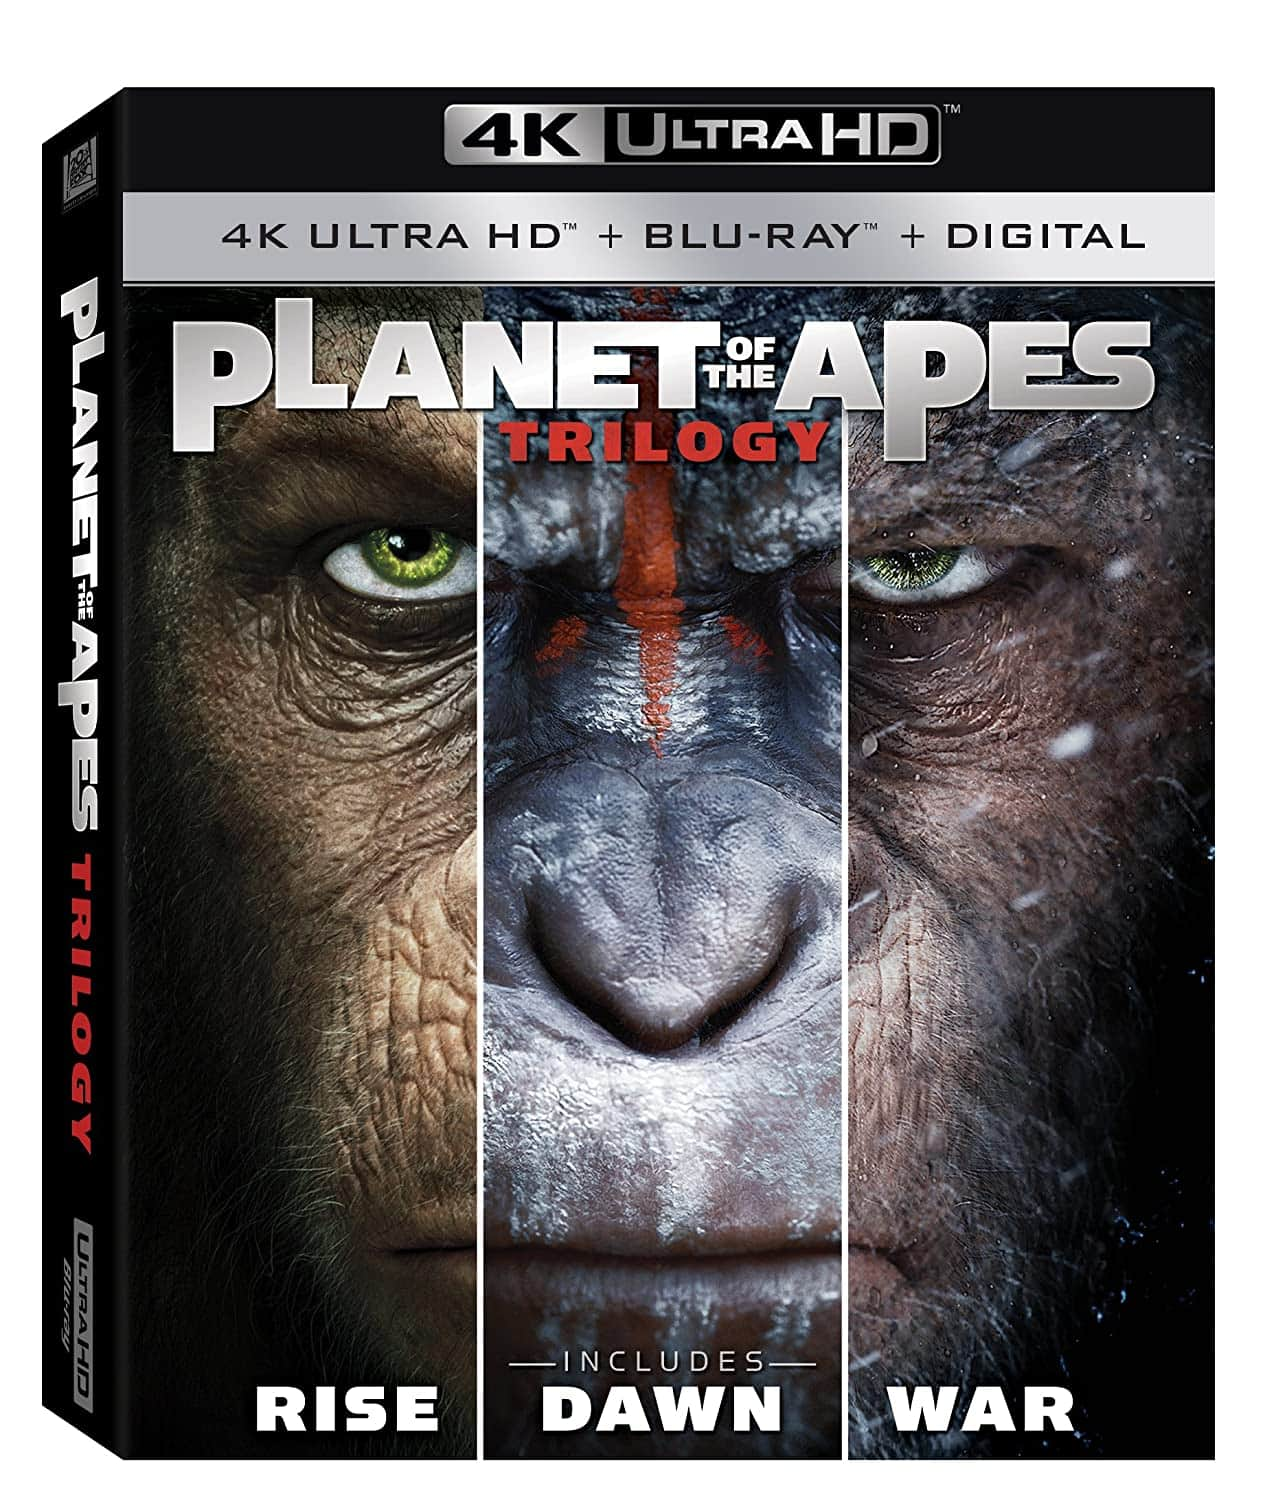 Planet of the Apes 1-3 Trilogy [4K Ultra HD + Blu-Ray + Digital] $24.99